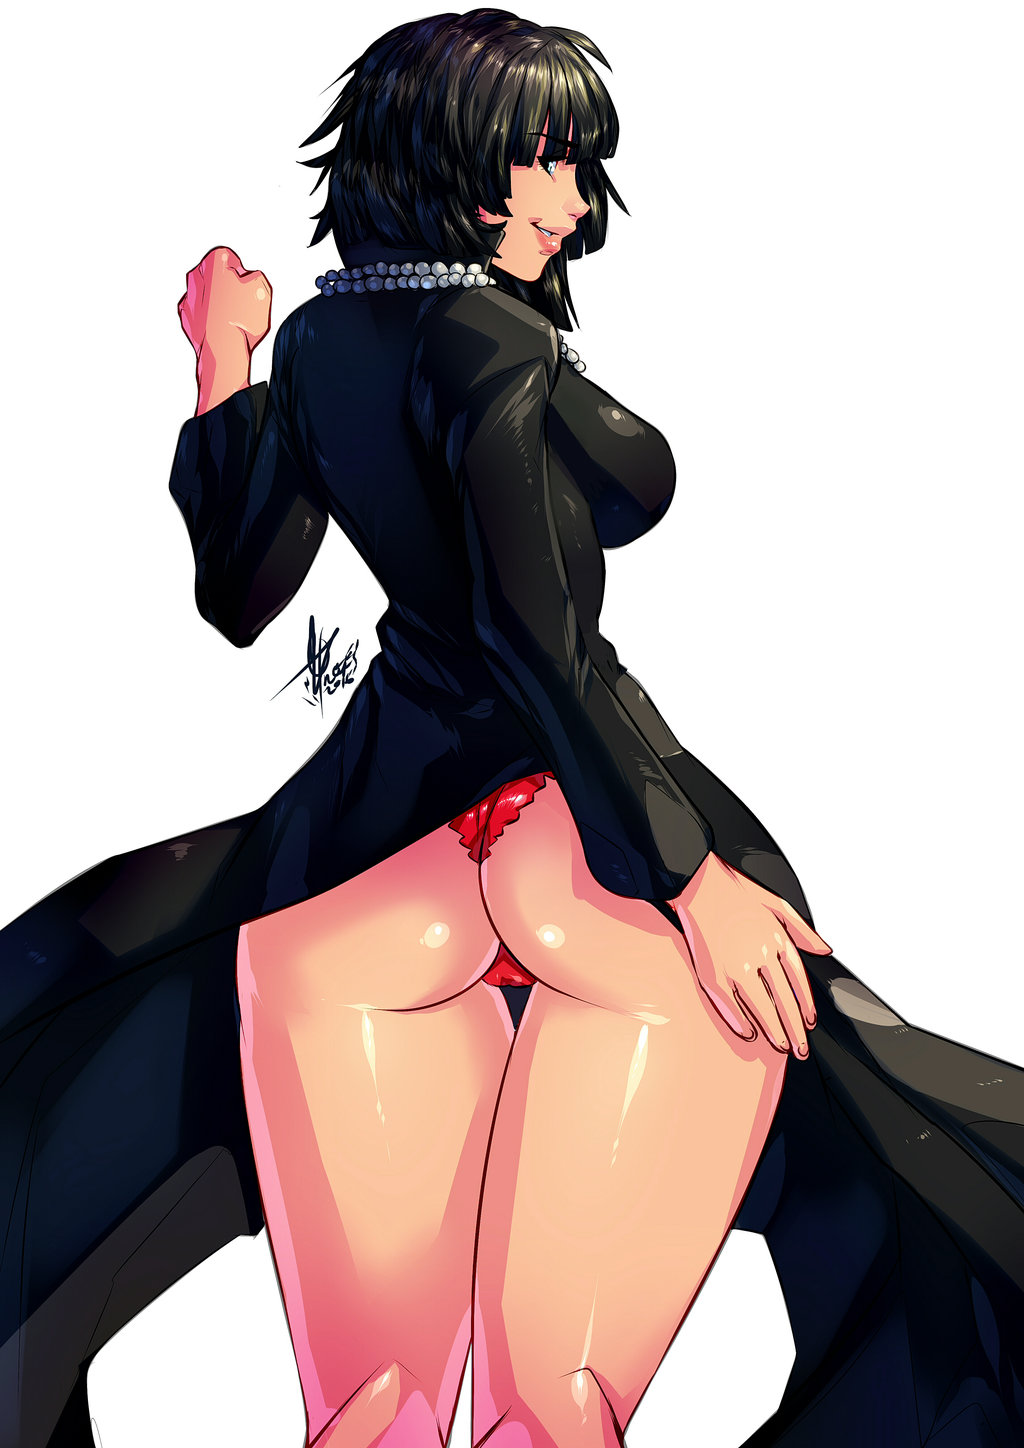 man ass fubuki one punch Vanessa from phineas and ferb